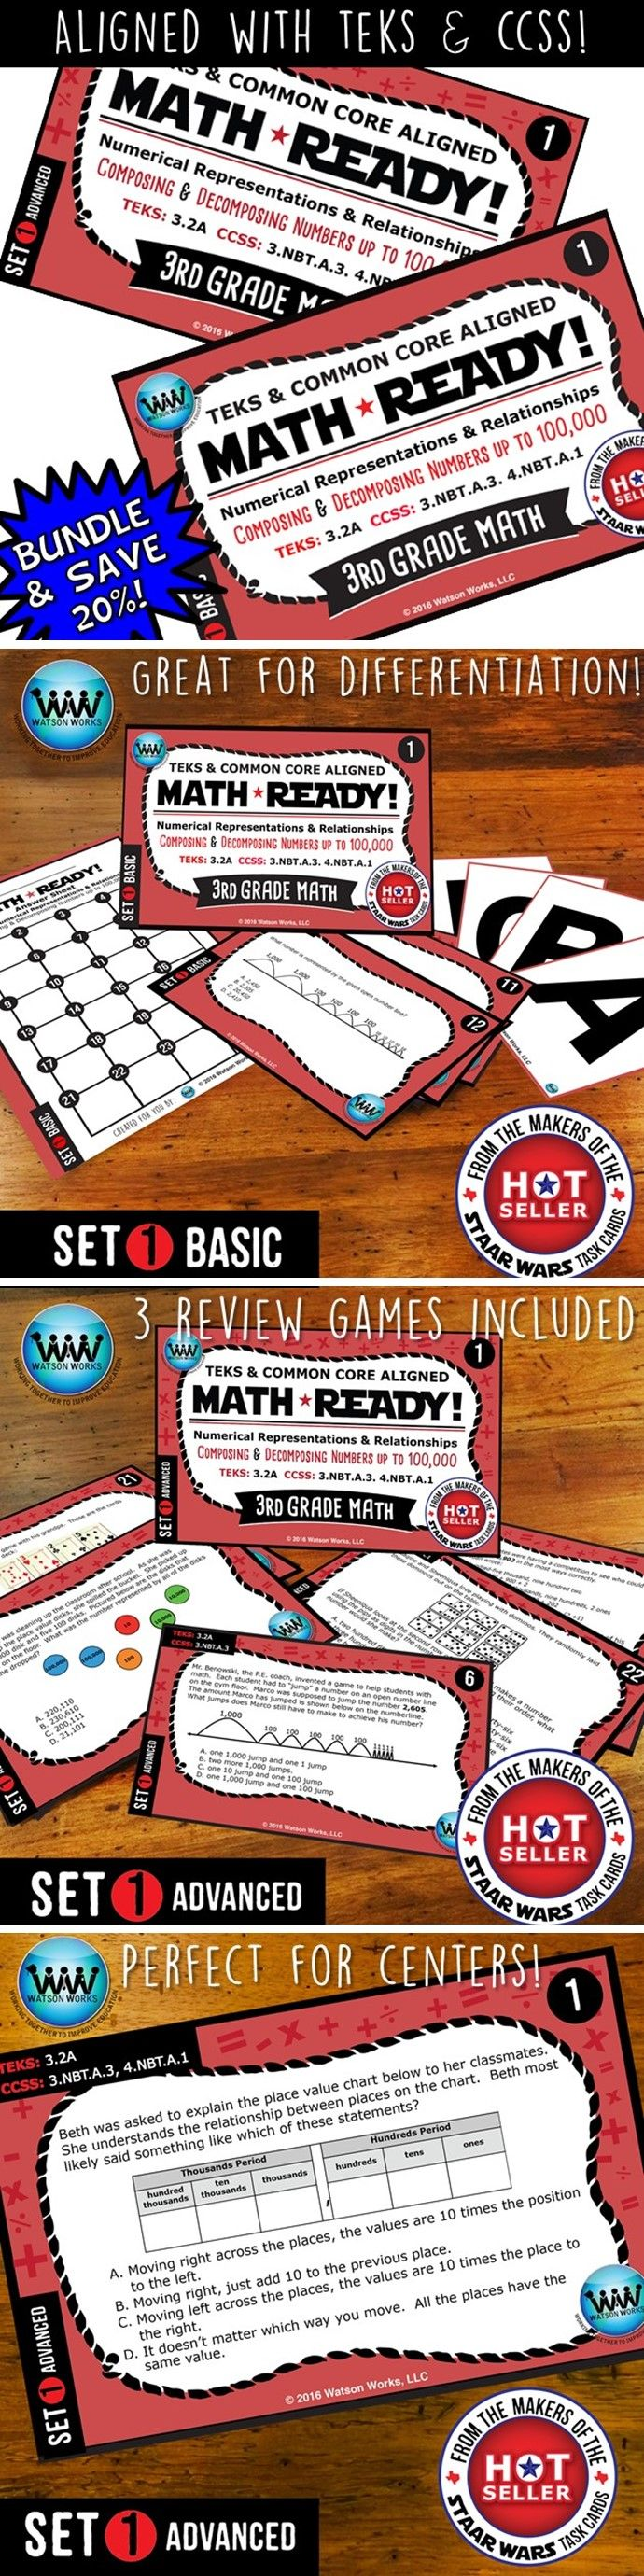 SAVE 20% WHEN YOU PURCHASE THIS BUNDLE (includes both our Basic & Advanced MATH READY Composing & Decomposing Numbers up to 100,000 Task Cards sets)! Both sets include 24 task cards w/ multiple choice answers. The BASIC set helps your students practice & apply their understanding of place value at a simpler, basic level with shorter questions, while the ADVANCED set features rigorous, higher-level thinking questions w/ longer word problems, making them great for differentiation! $5.60